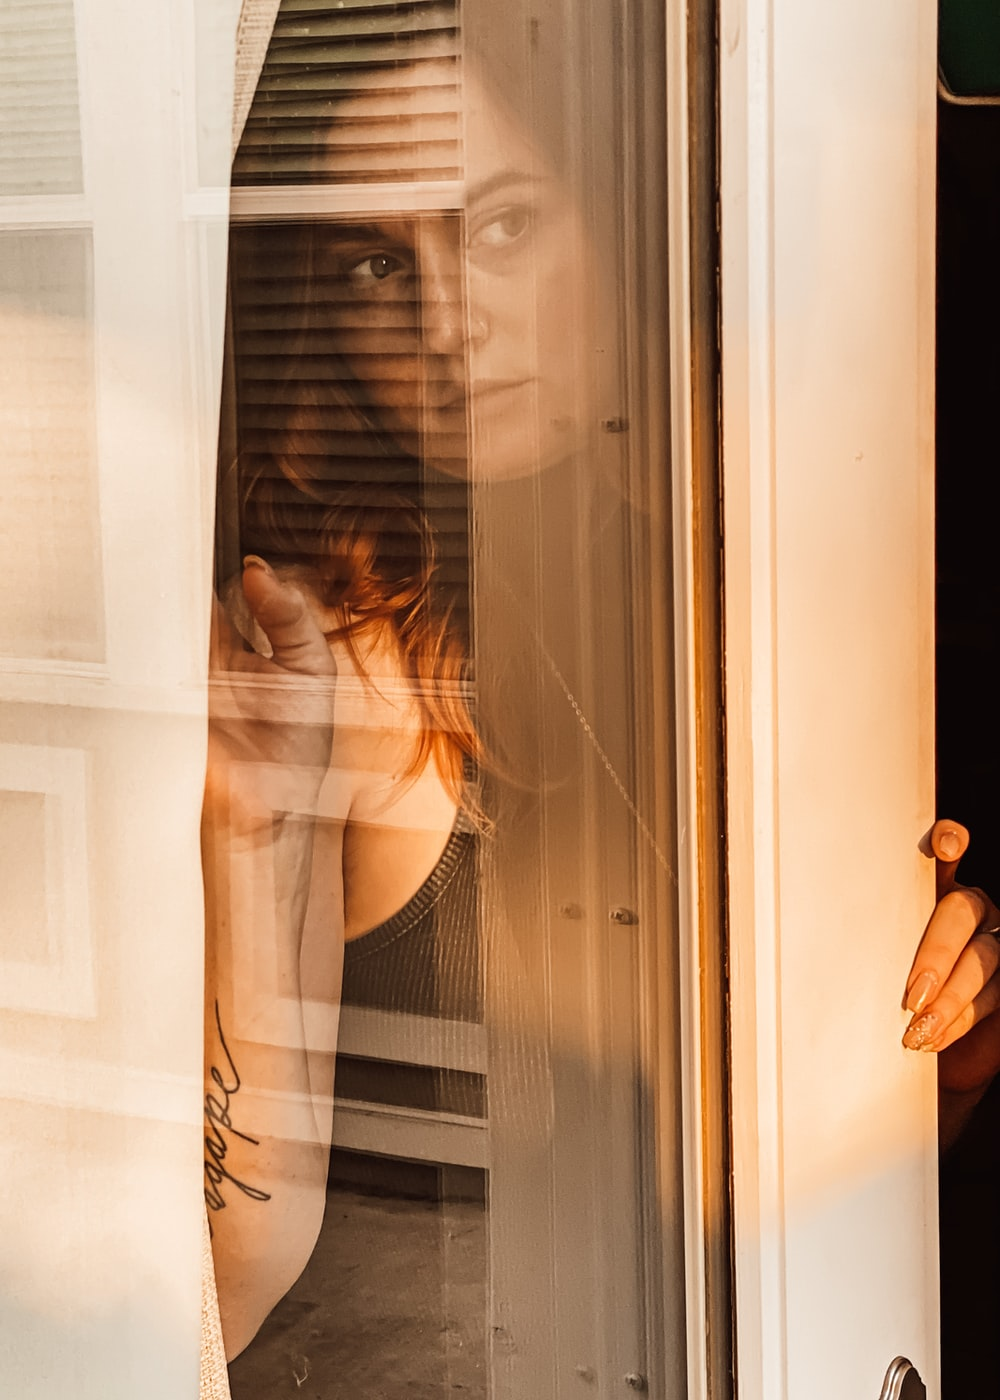 woman in white tank top standing beside white wooden framed glass window